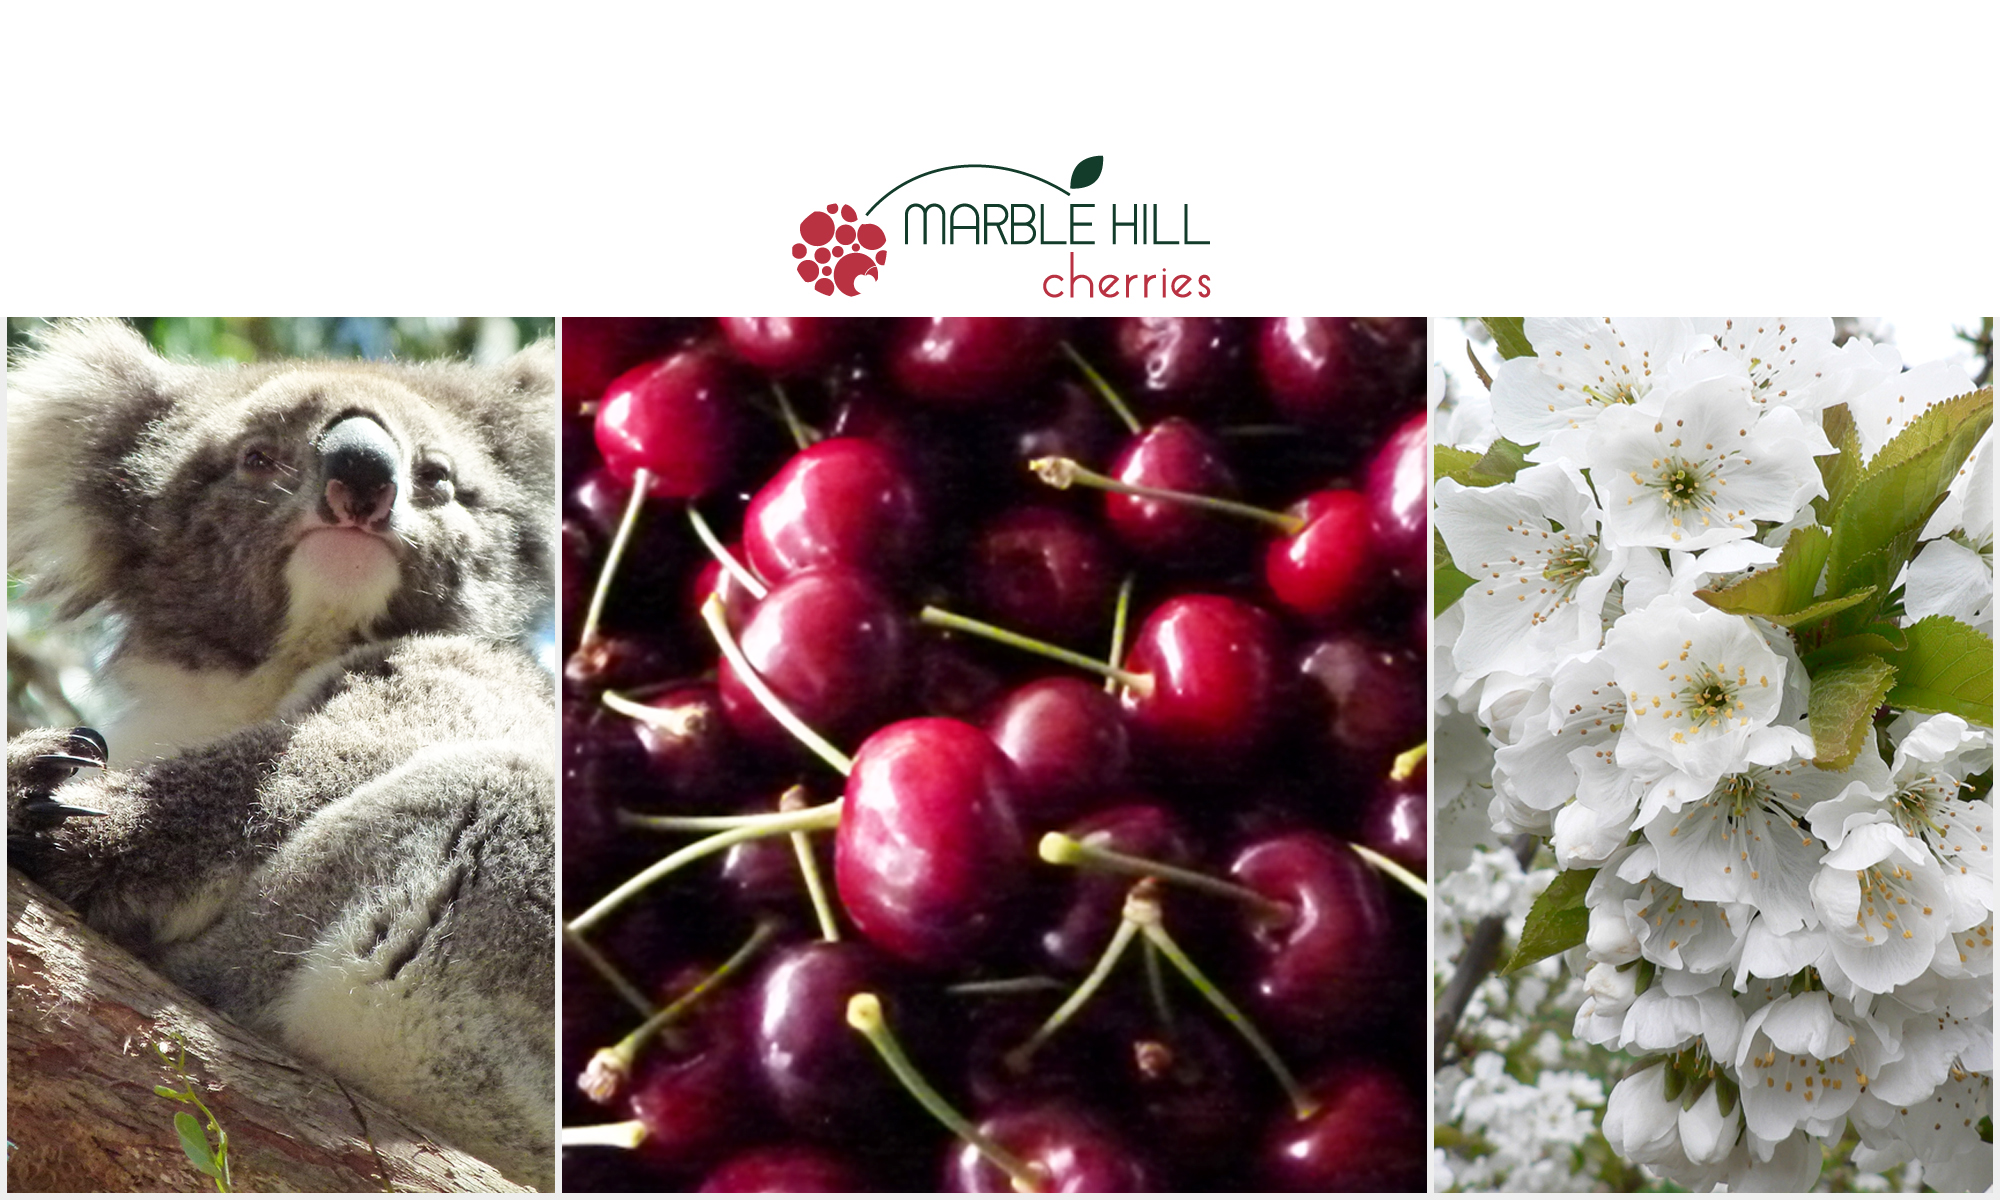 Marble Hill Cherries